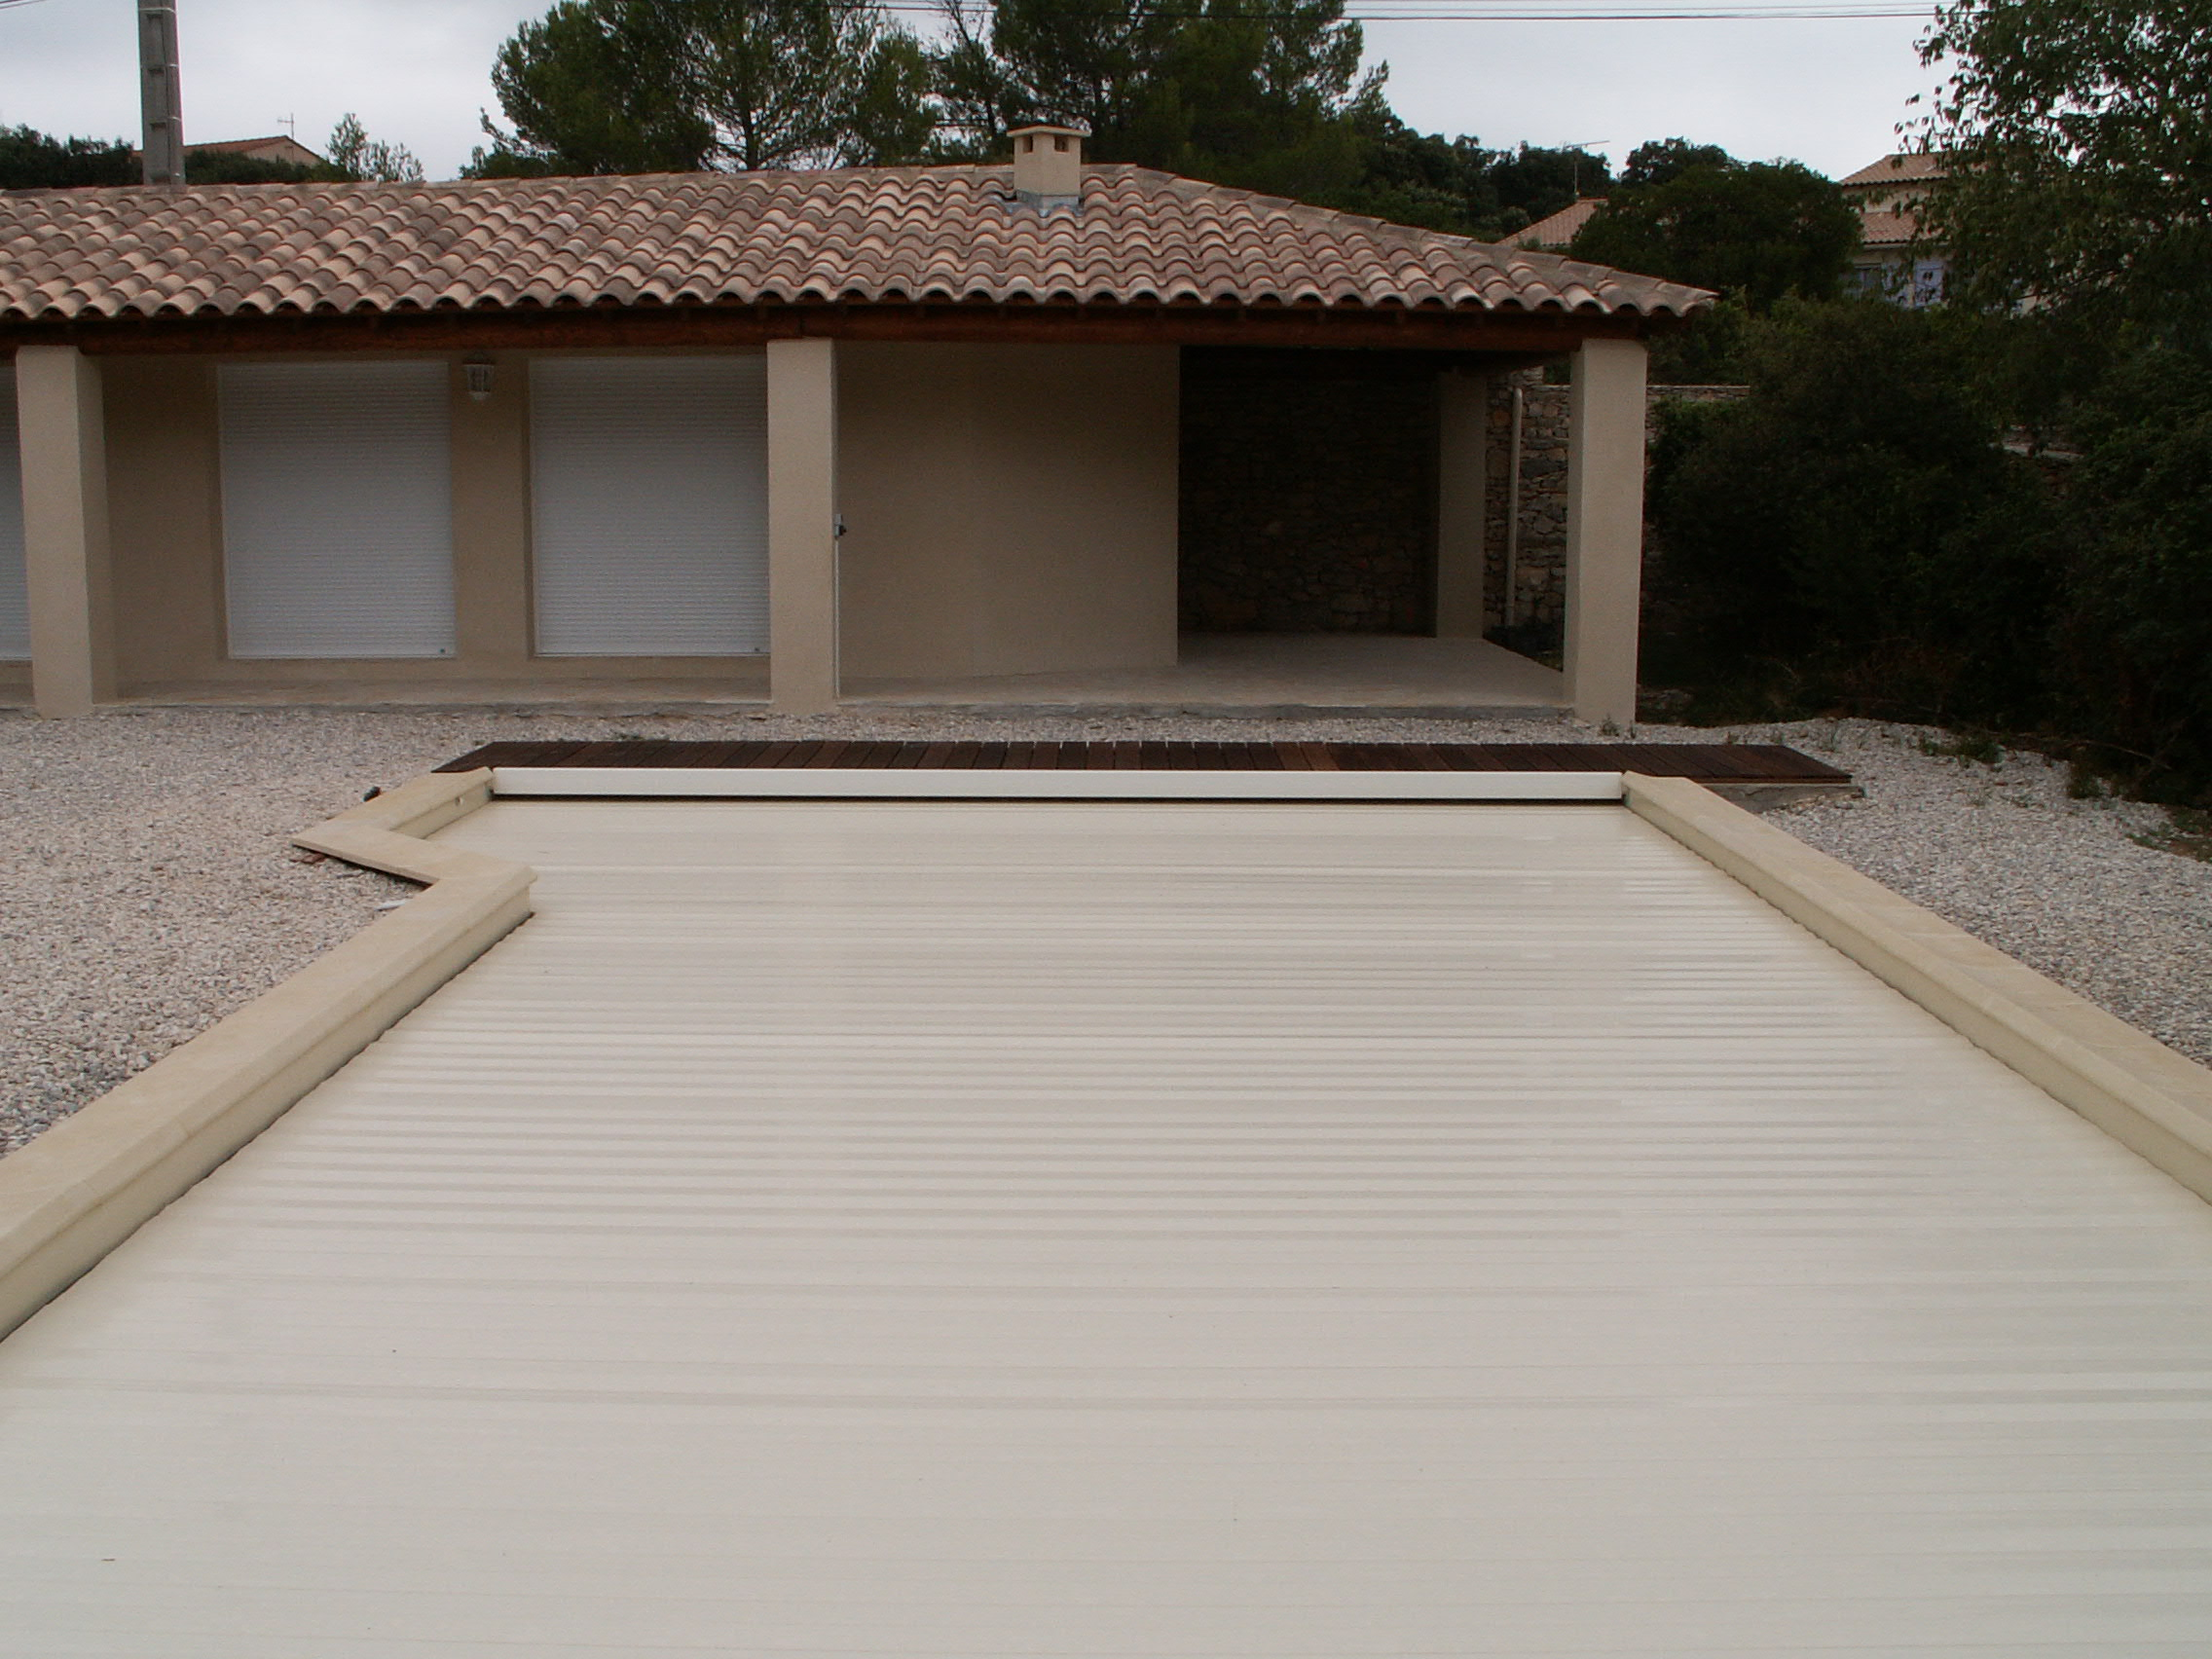 installation piscines Nimes - piscines_nimes-installation_piscines-amenagement_piscine-piscine_en_kit-piscine_en_bois-piscine_hors_sol-terrassement_piscine-installation_spa-renovation_piscine